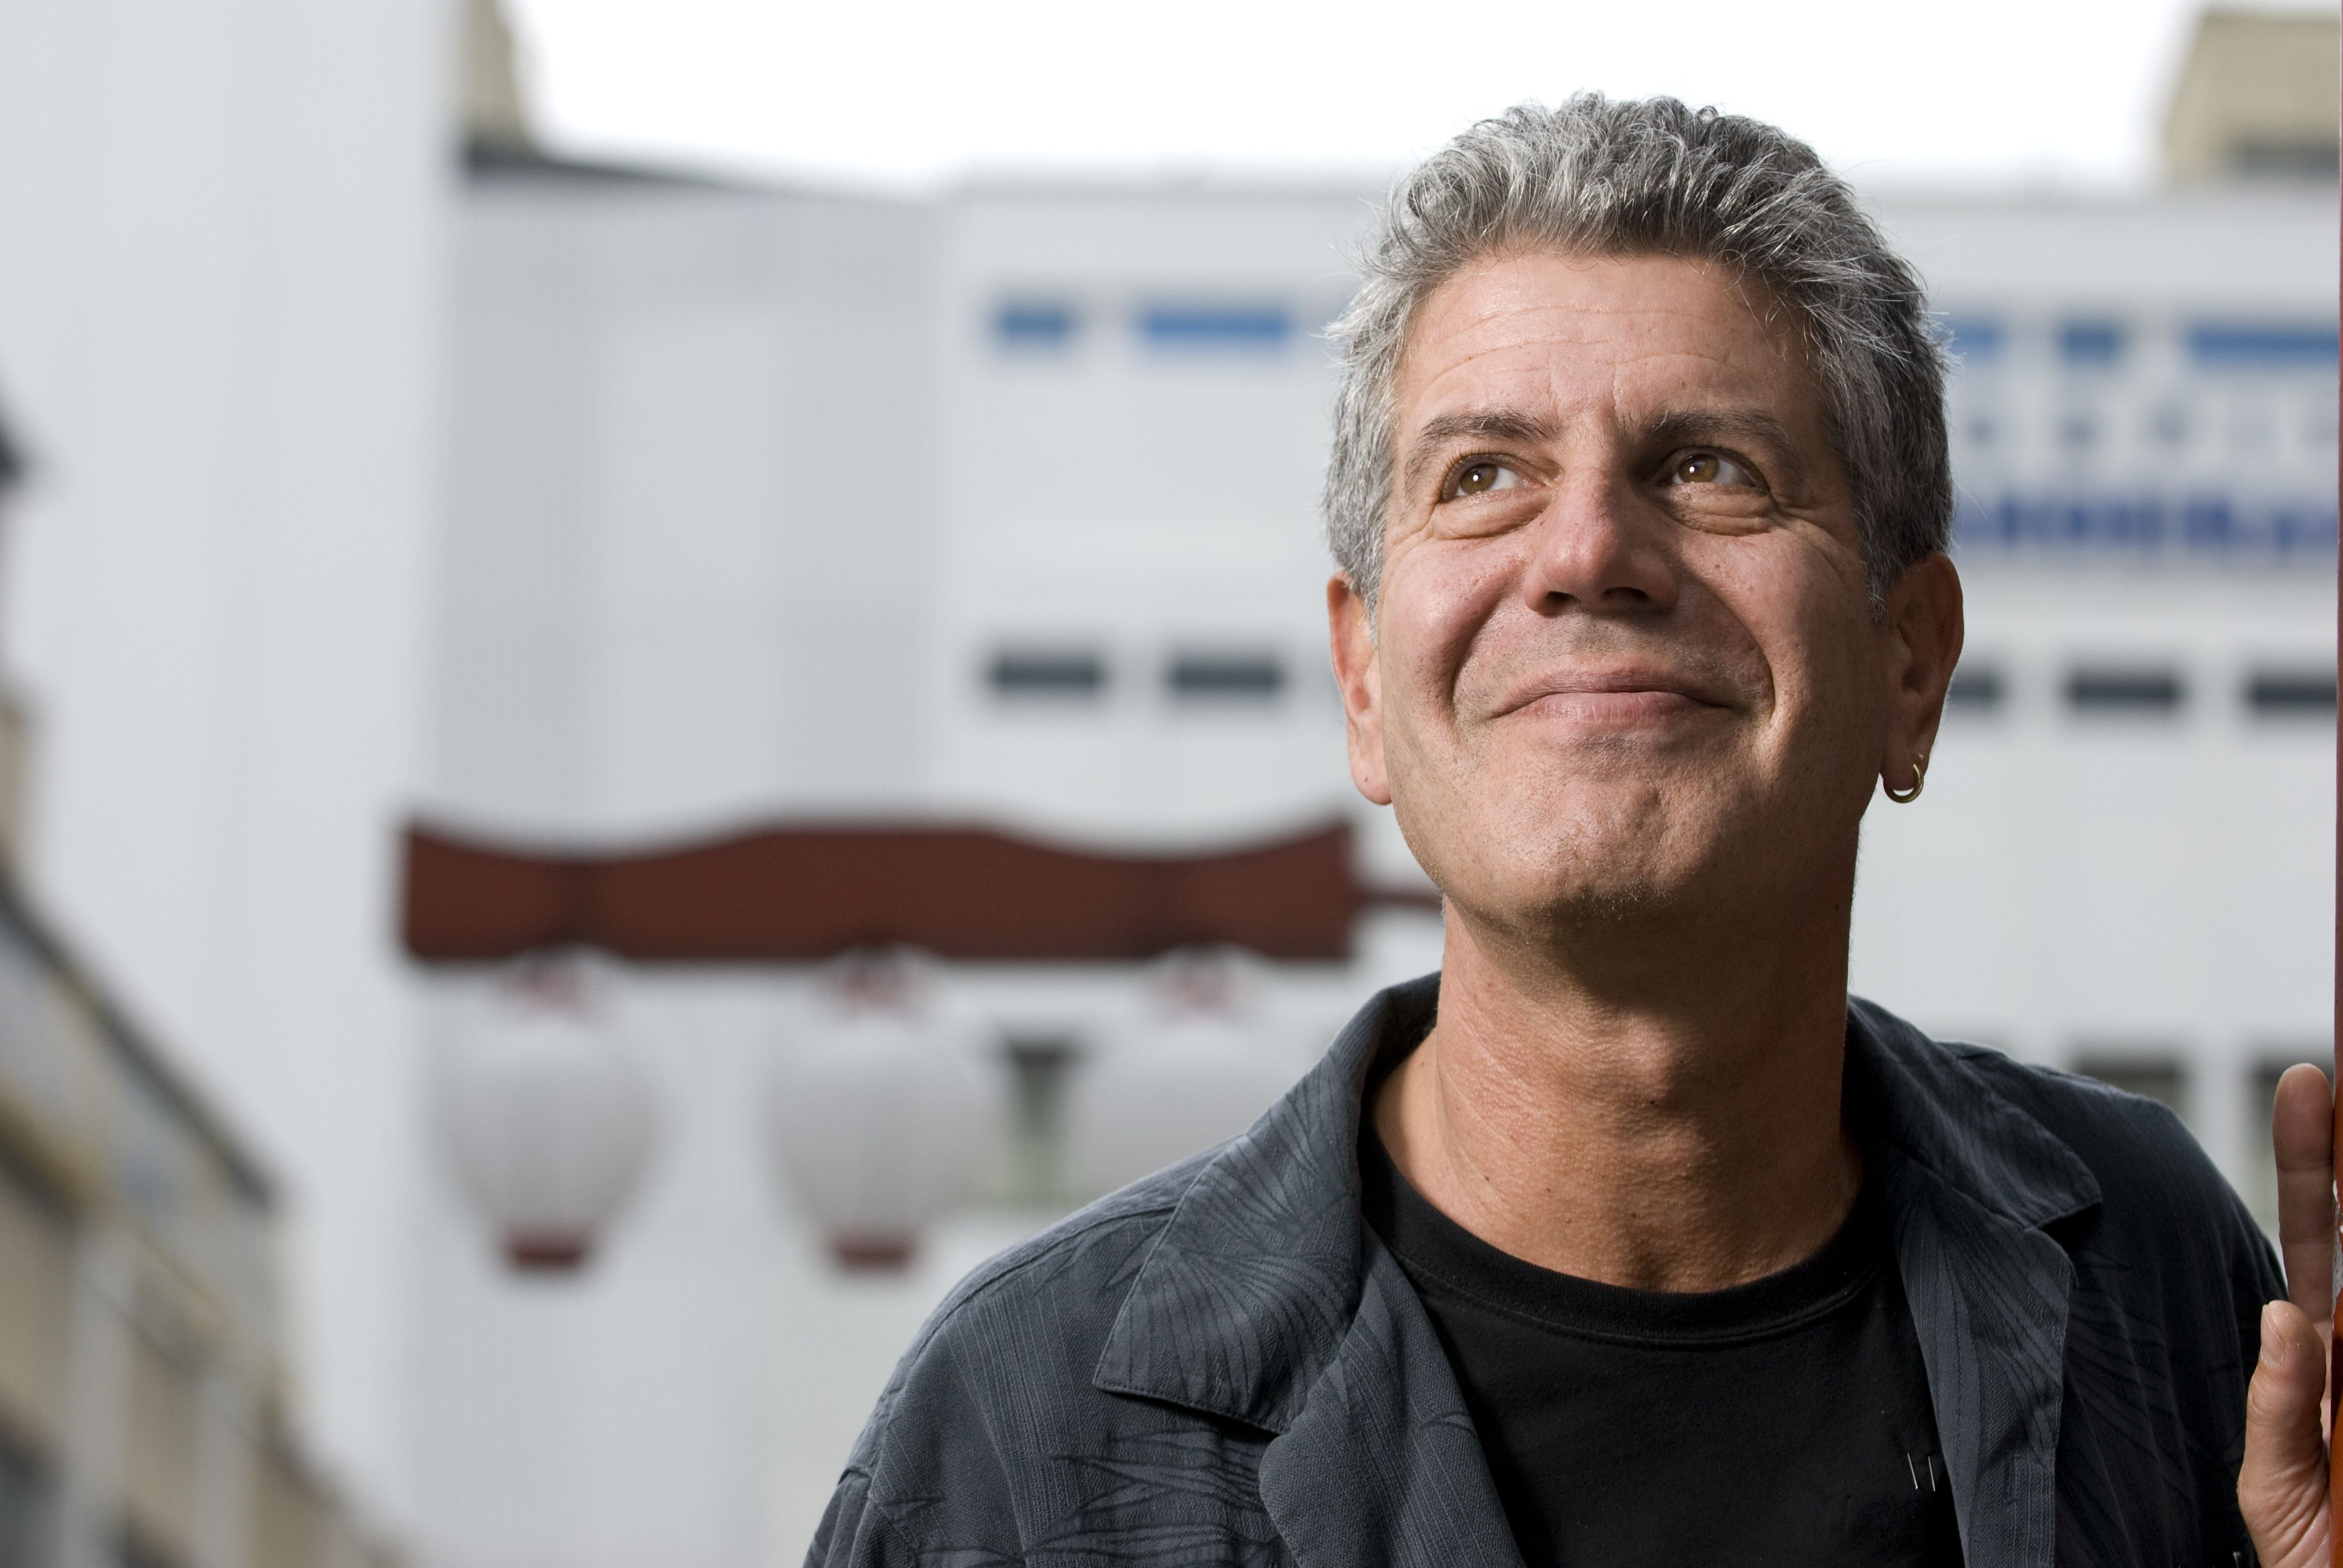 2b9b3b24e The 22 Best Anthony Bourdain TV Episodes And Quotes